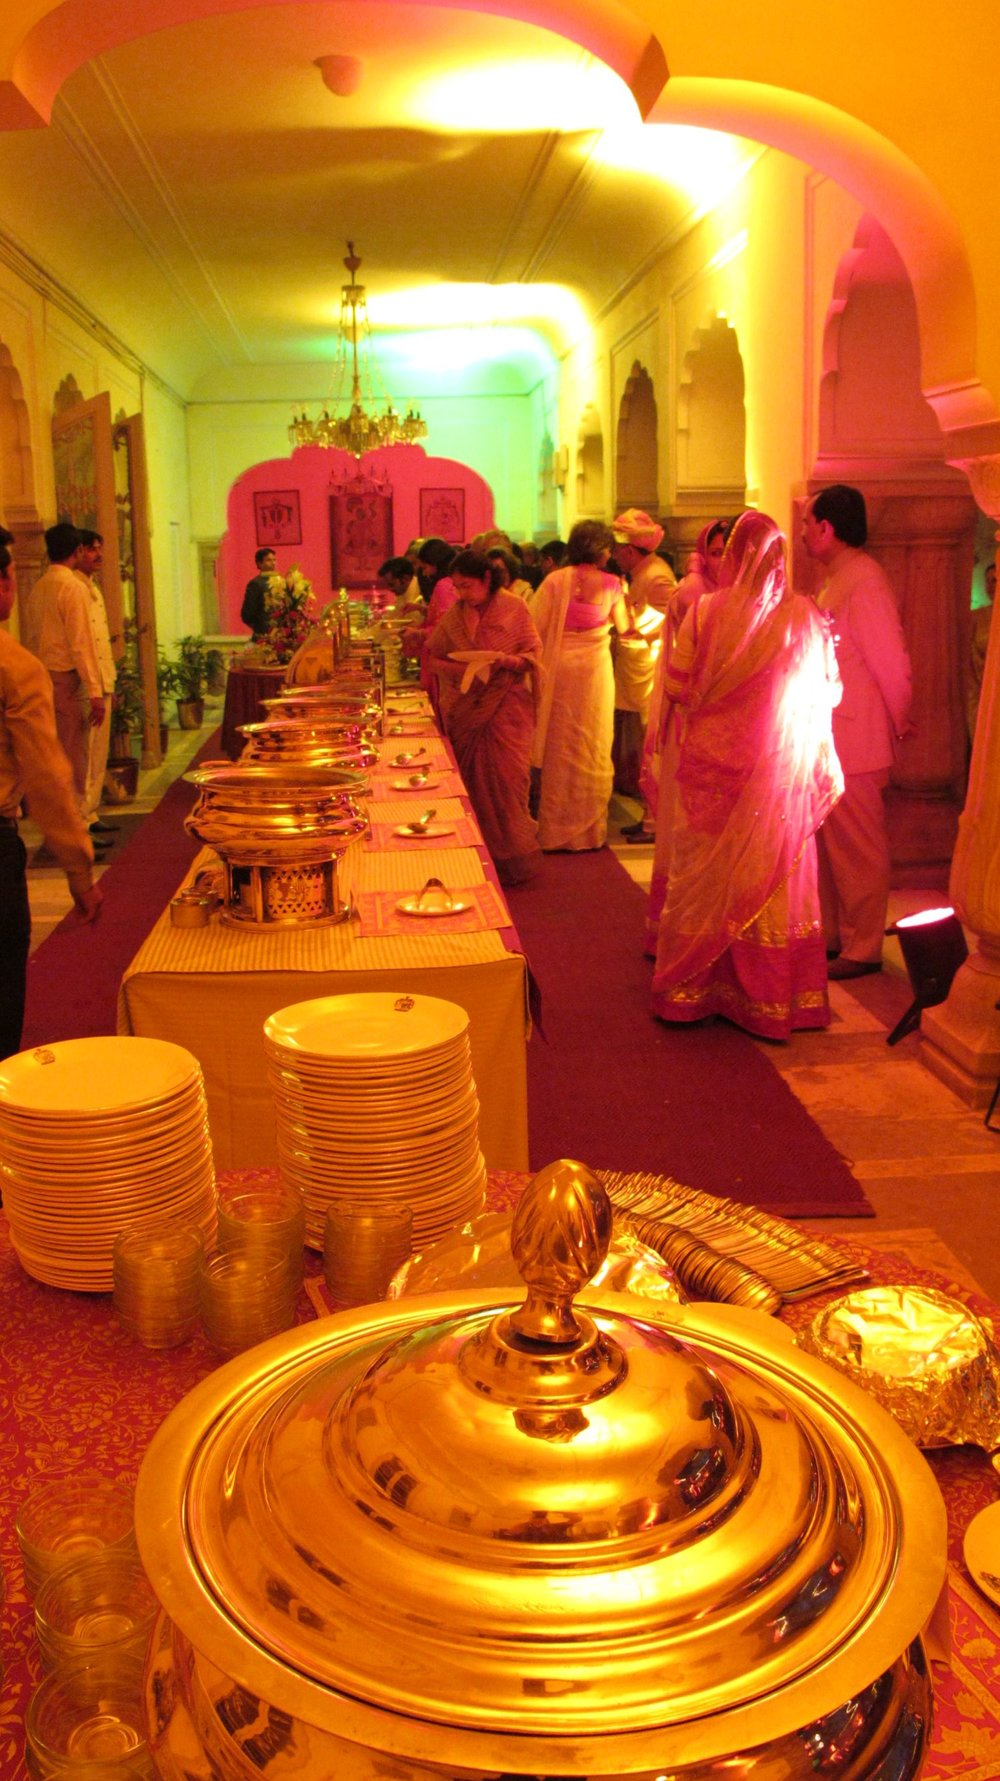 City palace of Jaipur   Royal family   Private party   Diner with silver dishes   ©sandrine cohen